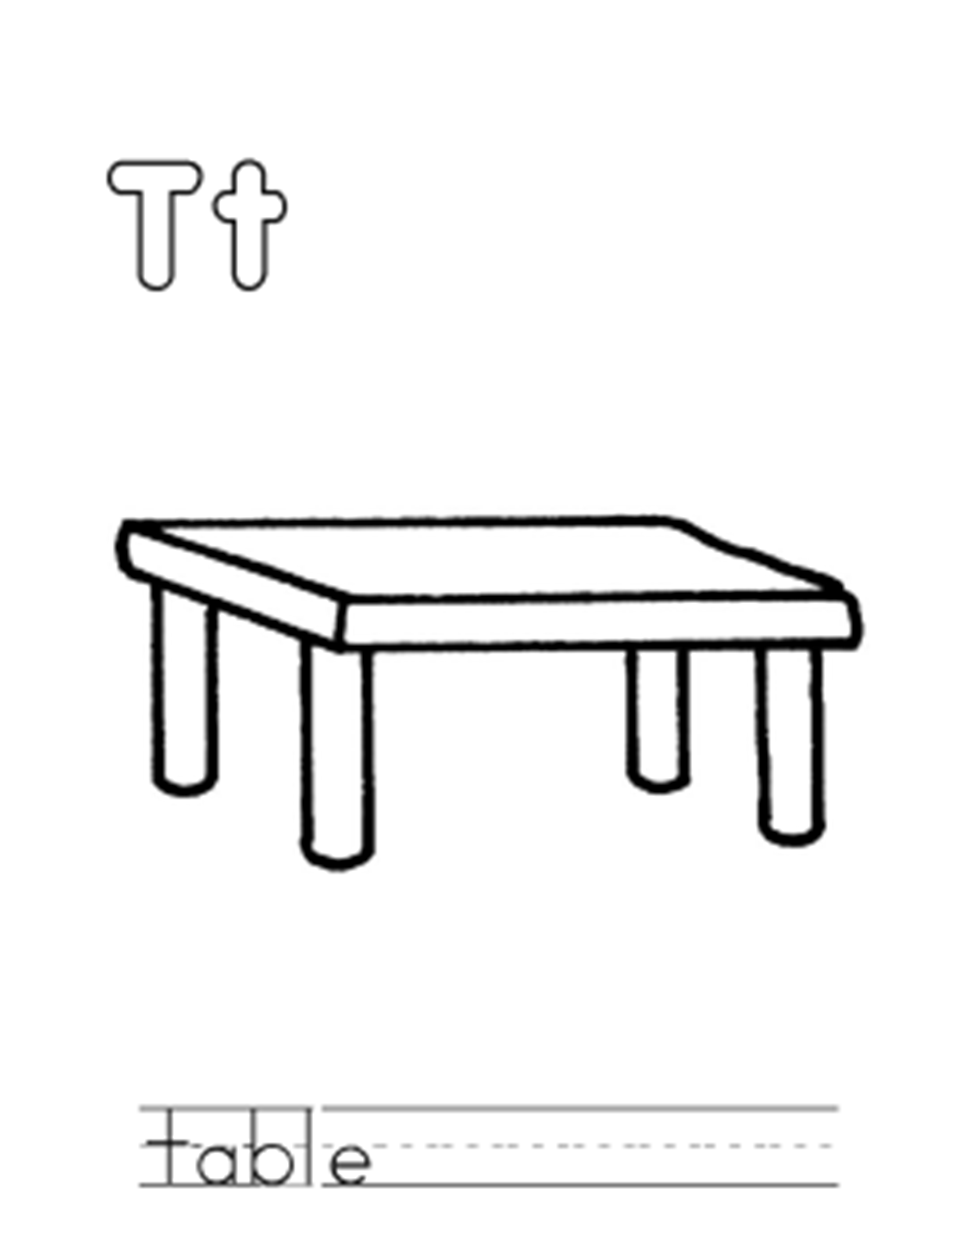 Table Alphabet Coloring Page | Alphabet Coloring pages of ...